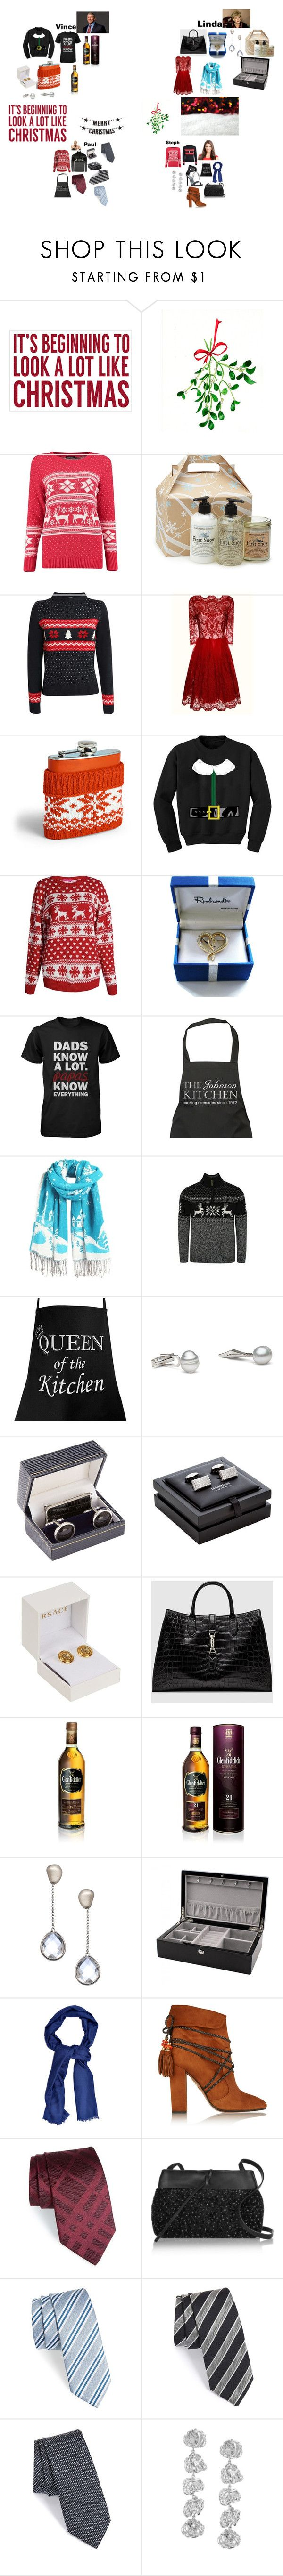 """Sarah's Christmas Presents for the McMahon/ Levesque's"" by wwetnagirl ❤ liked on Polyvore featuring Sixtrees, Bloomingville, Pilot, Chi Chi, Paladone, Royce Leather, Harrods, Versace, Gucci and Glenfiddich"